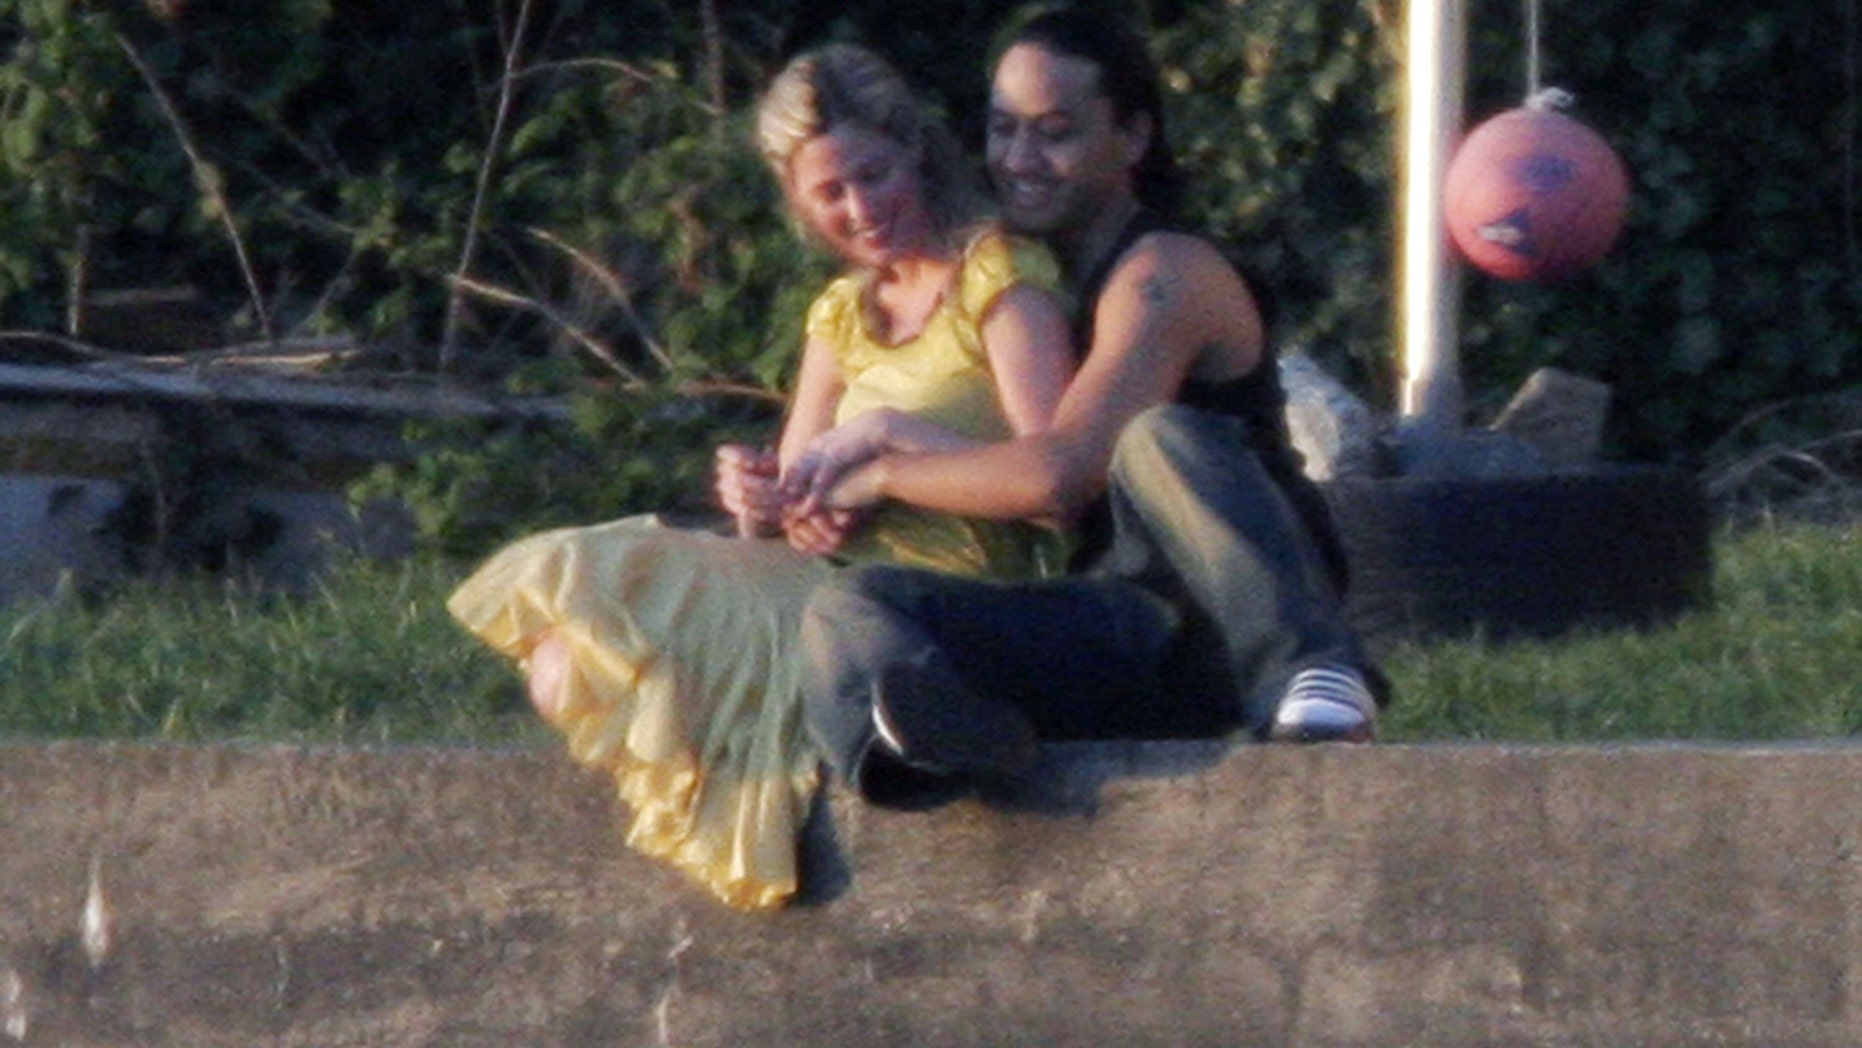 Mary Kay Letourneau, seen here with Vili Fualaau in 2006, spoke out on her prison sentence.